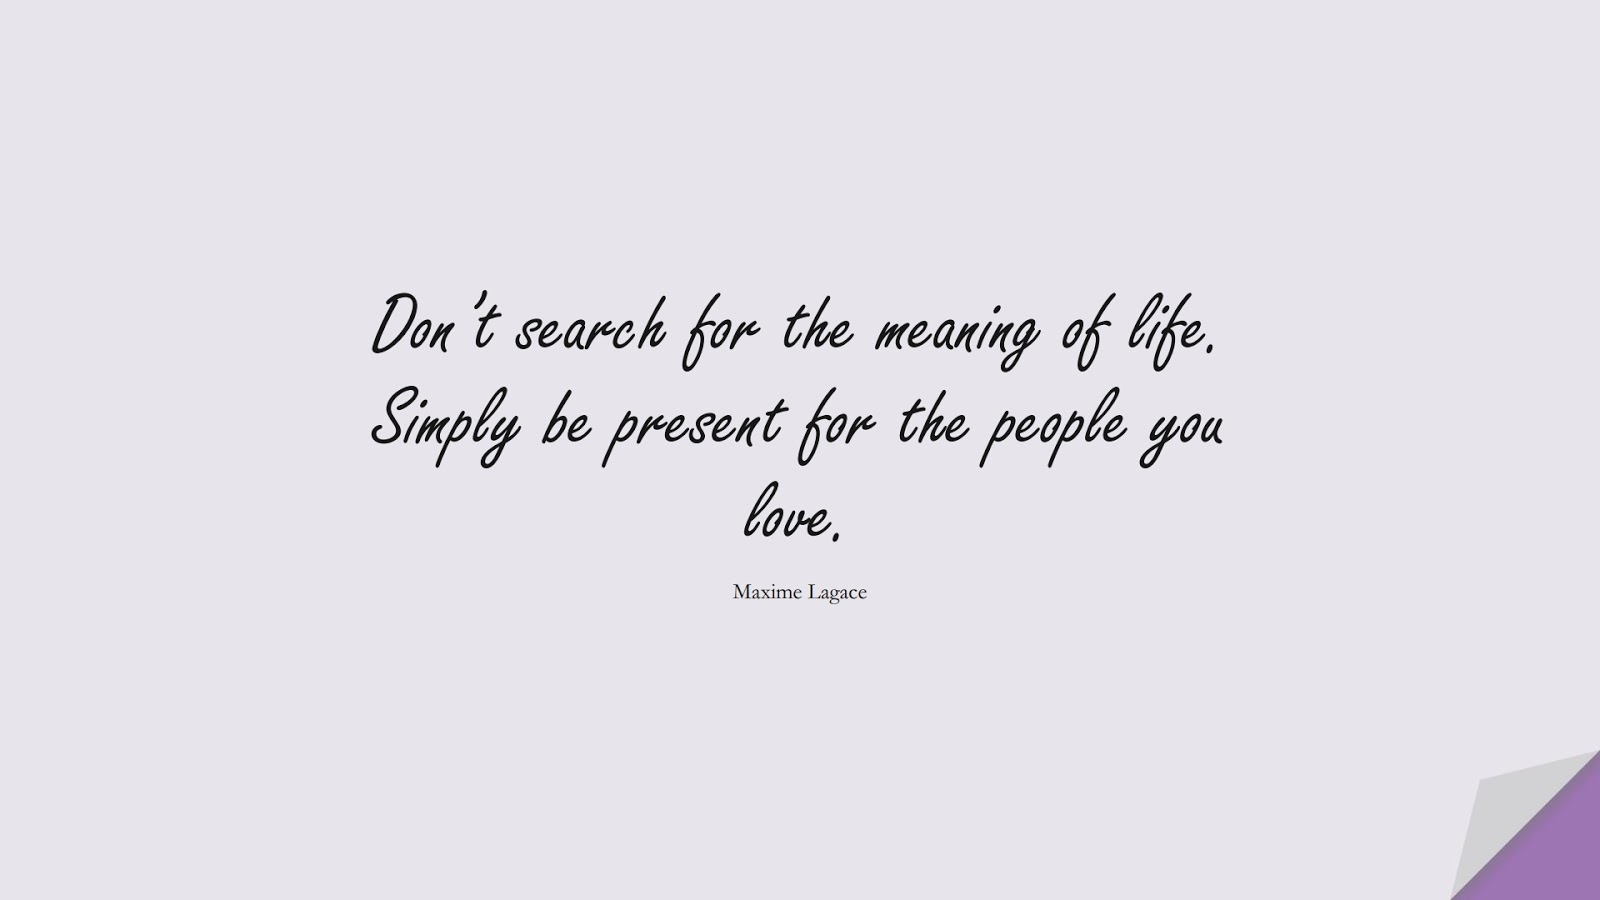 Don't search for the meaning of life. Simply be present for the people you love. (Maxime Lagace);  #LifeQuotes